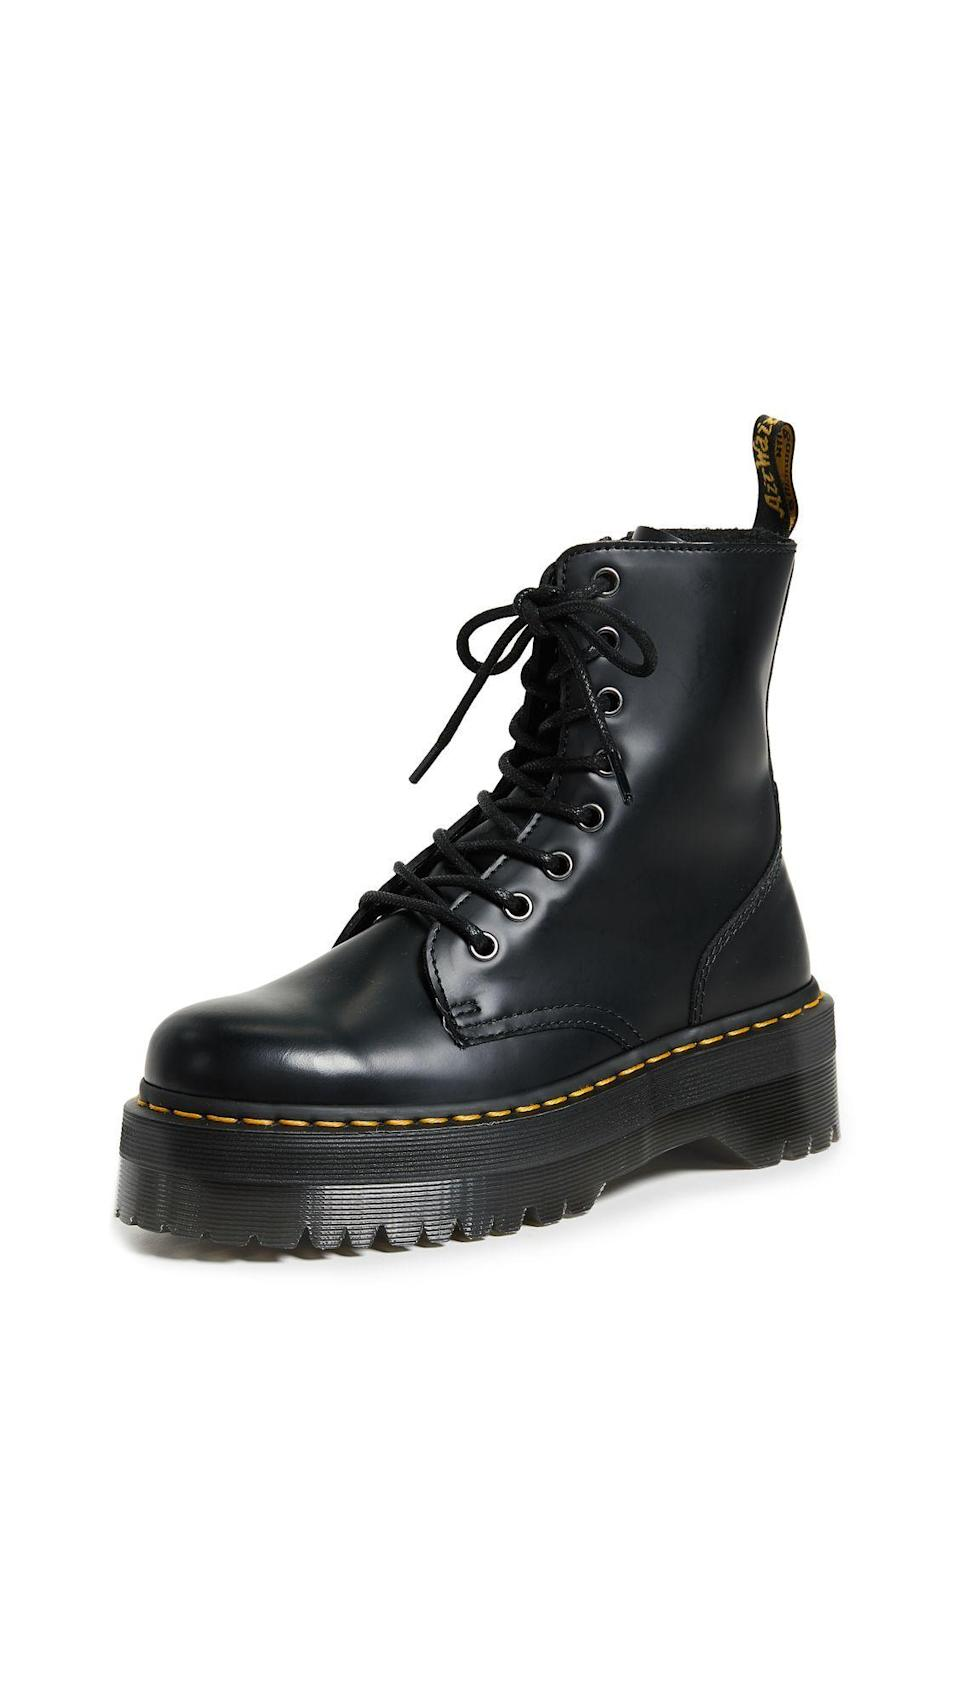 """<p><strong>Dr. Martens</strong></p><p>shopbop.com</p><p><strong>$180.00</strong></p><p><a href=""""https://go.redirectingat.com?id=74968X1596630&url=https%3A%2F%2Fwww.shopbop.com%2Fjadon-eye-boot-dr-martens%2Fvp%2Fv%3D1%2F1581892947.htm&sref=https%3A%2F%2Fwww.harpersbazaar.com%2Ffashion%2Ftrends%2Fg7958%2Fhow-to-wear-ankle-boots%2F"""" rel=""""nofollow noopener"""" target=""""_blank"""" data-ylk=""""slk:Shop Now"""" class=""""link rapid-noclick-resp"""">Shop Now</a></p><p>One of the most classic combat styles, Doc Martens add a little edge to even the most feminine and girliest of dresses. </p>"""